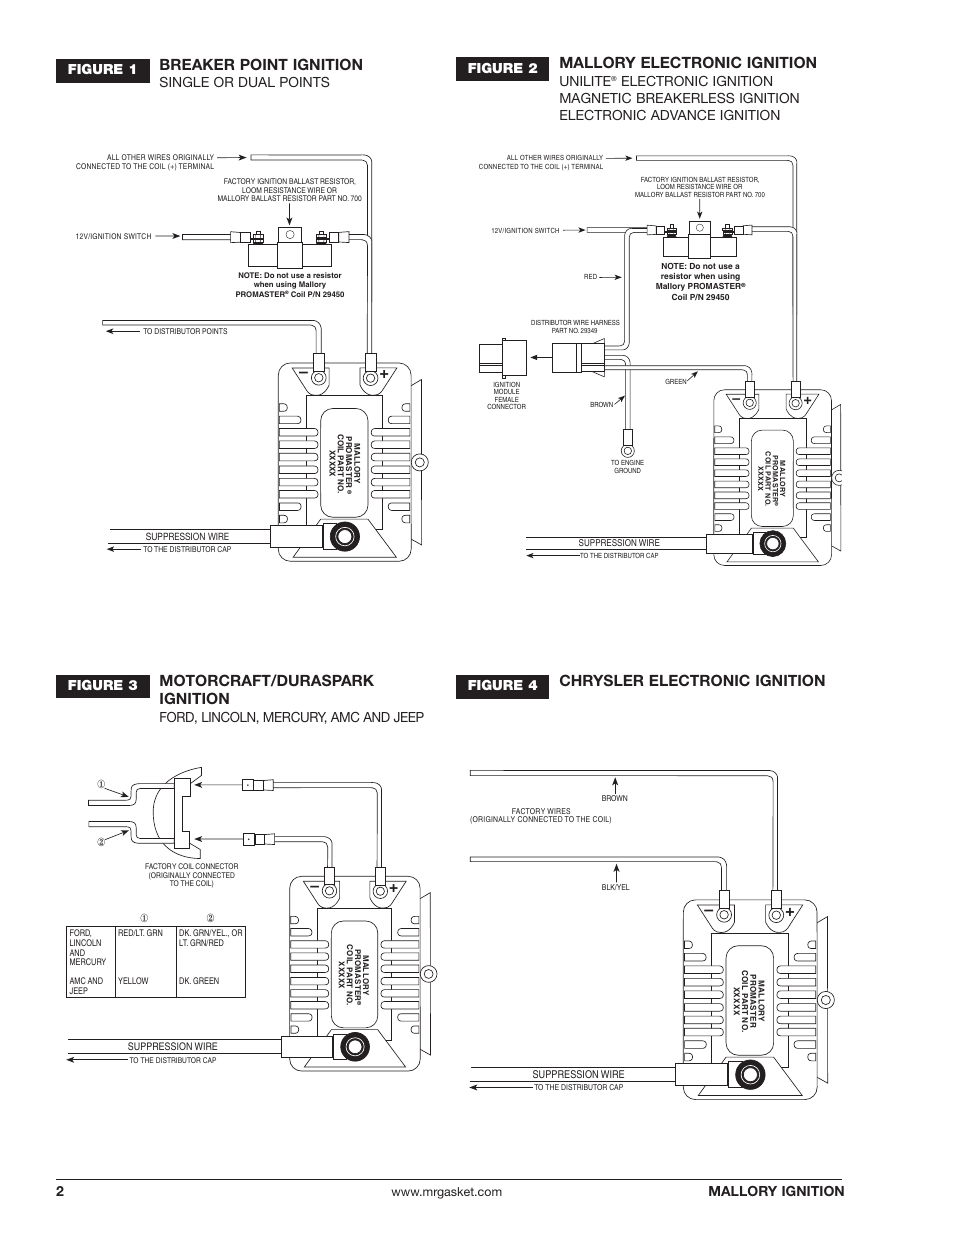 medium resolution of breaker point ignition mallory electronic ignition